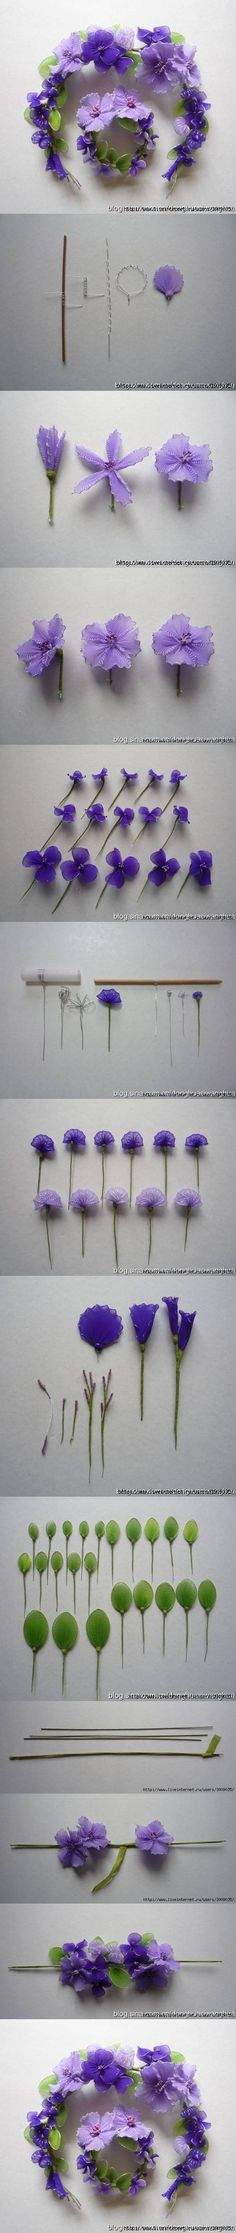 DIY Wire Nylon Flowers - #crafts